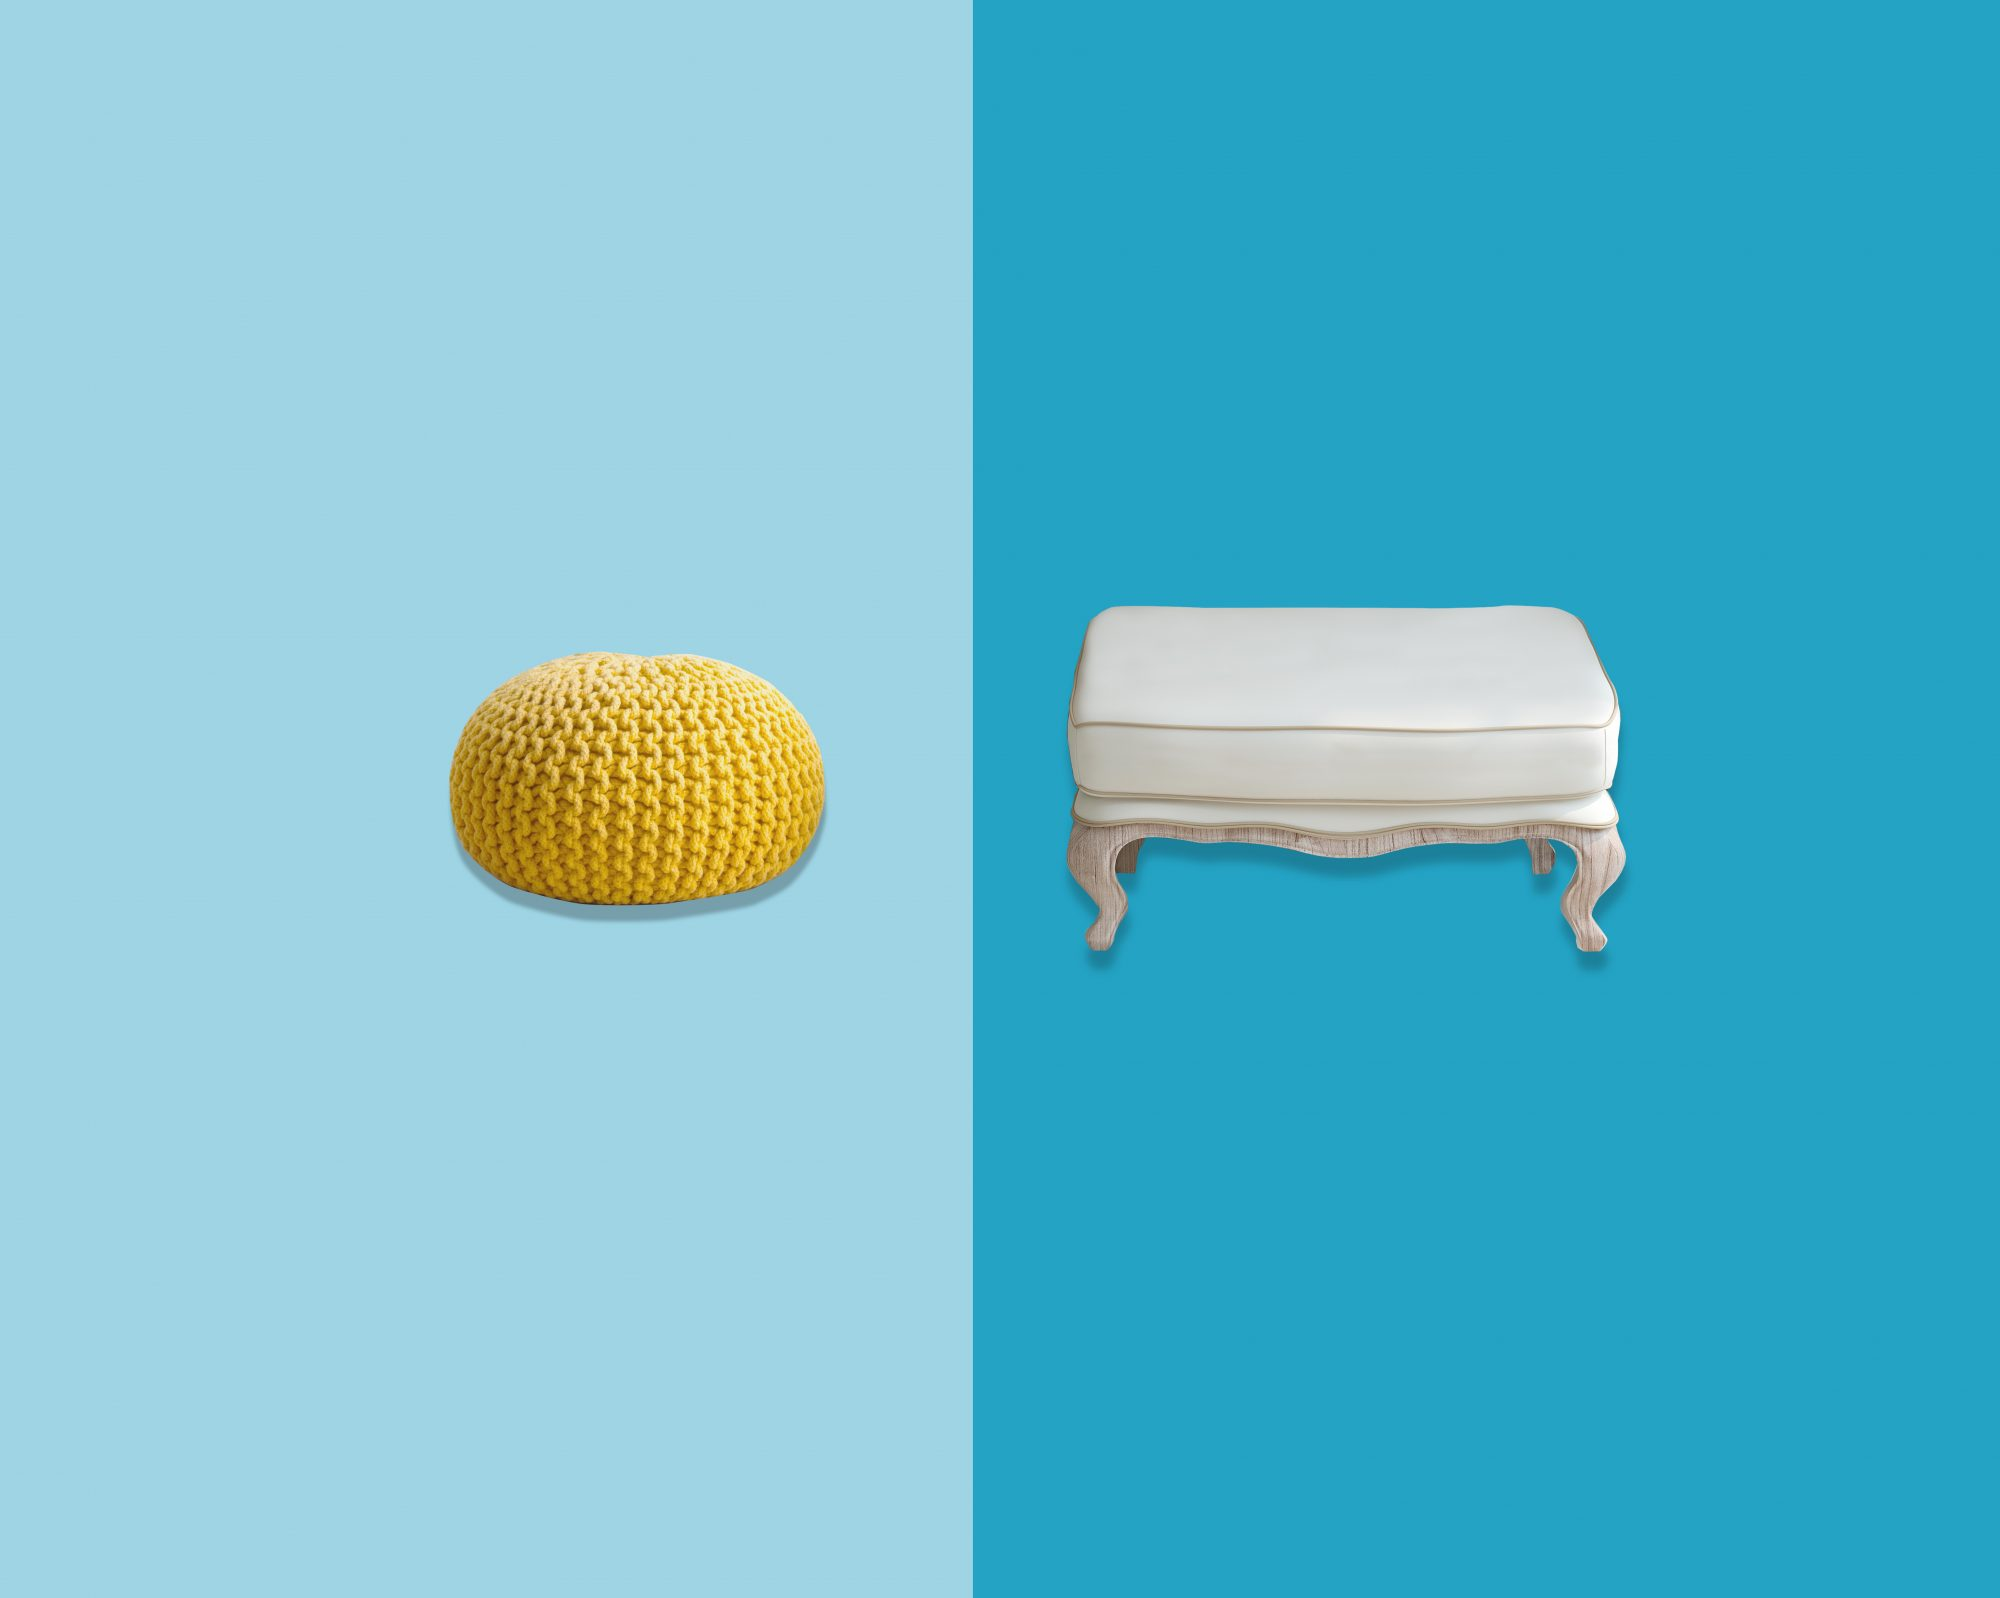 Tremendous Whats The Difference Between A Pouf And An Ottoman Real Andrewgaddart Wooden Chair Designs For Living Room Andrewgaddartcom